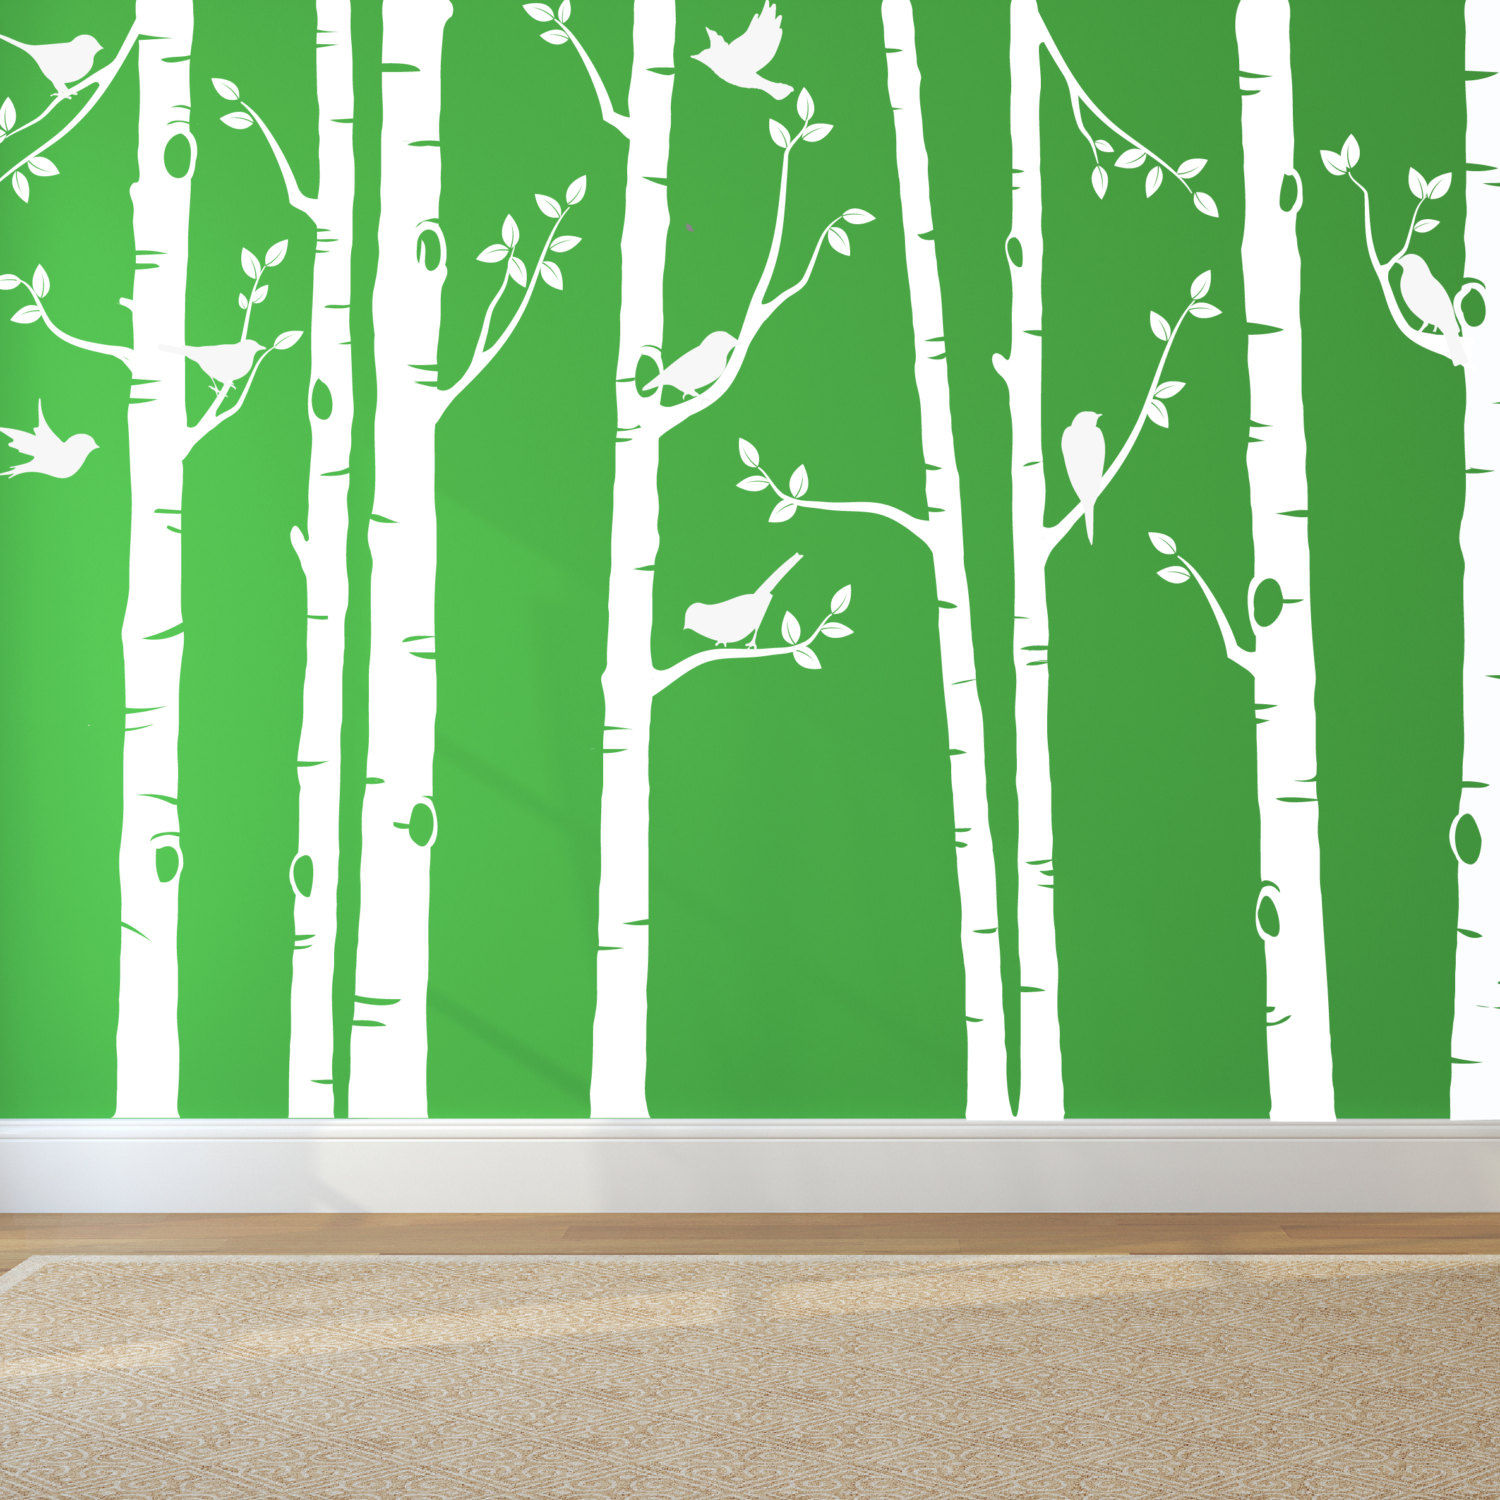 White Tree Wall Stickers For Nursery And Wall Art Decoration Urban Artwork